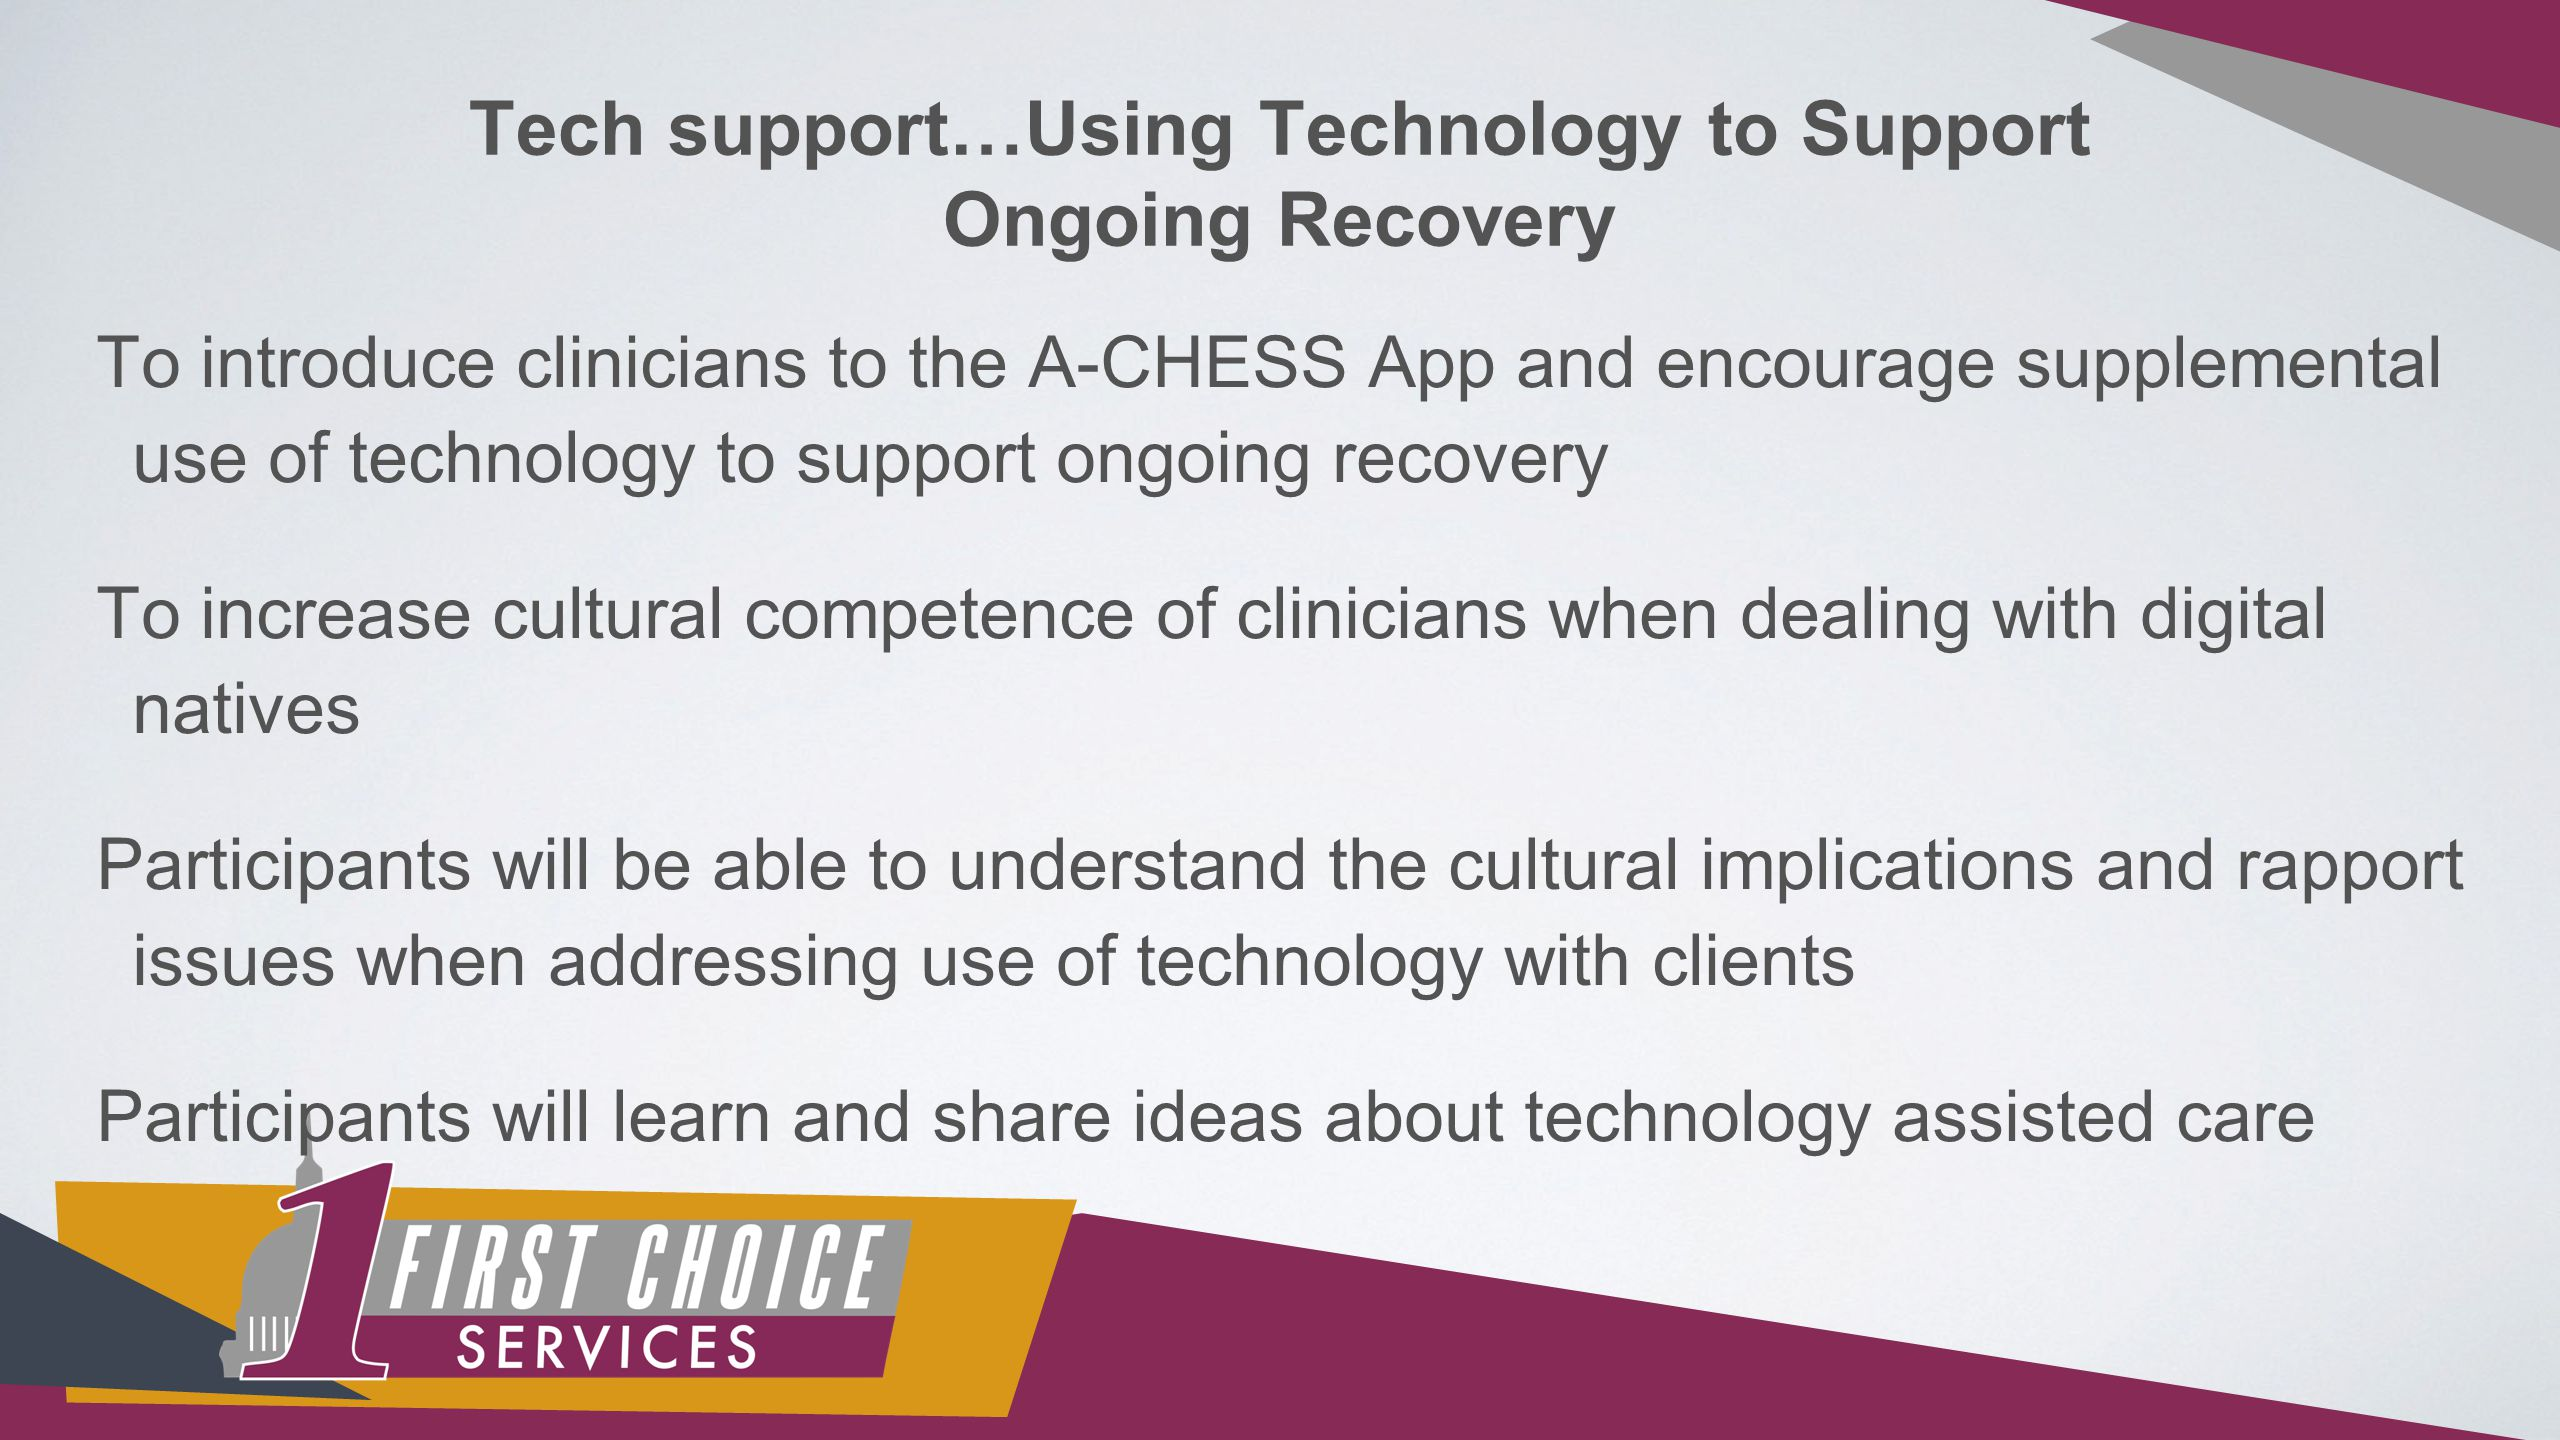 Tech support…Using Technology to Support Ongoing Recovery To introduce clinicians to the A-CHESS App and encourage supplemental use of technology to support ongoing recovery To increase cultural competence of clinicians when dealing with digital natives Participants will be able to understand the cultural implications and rapport issues when addressing use of technology with clients Participants will learn and share ideas about technology assisted care